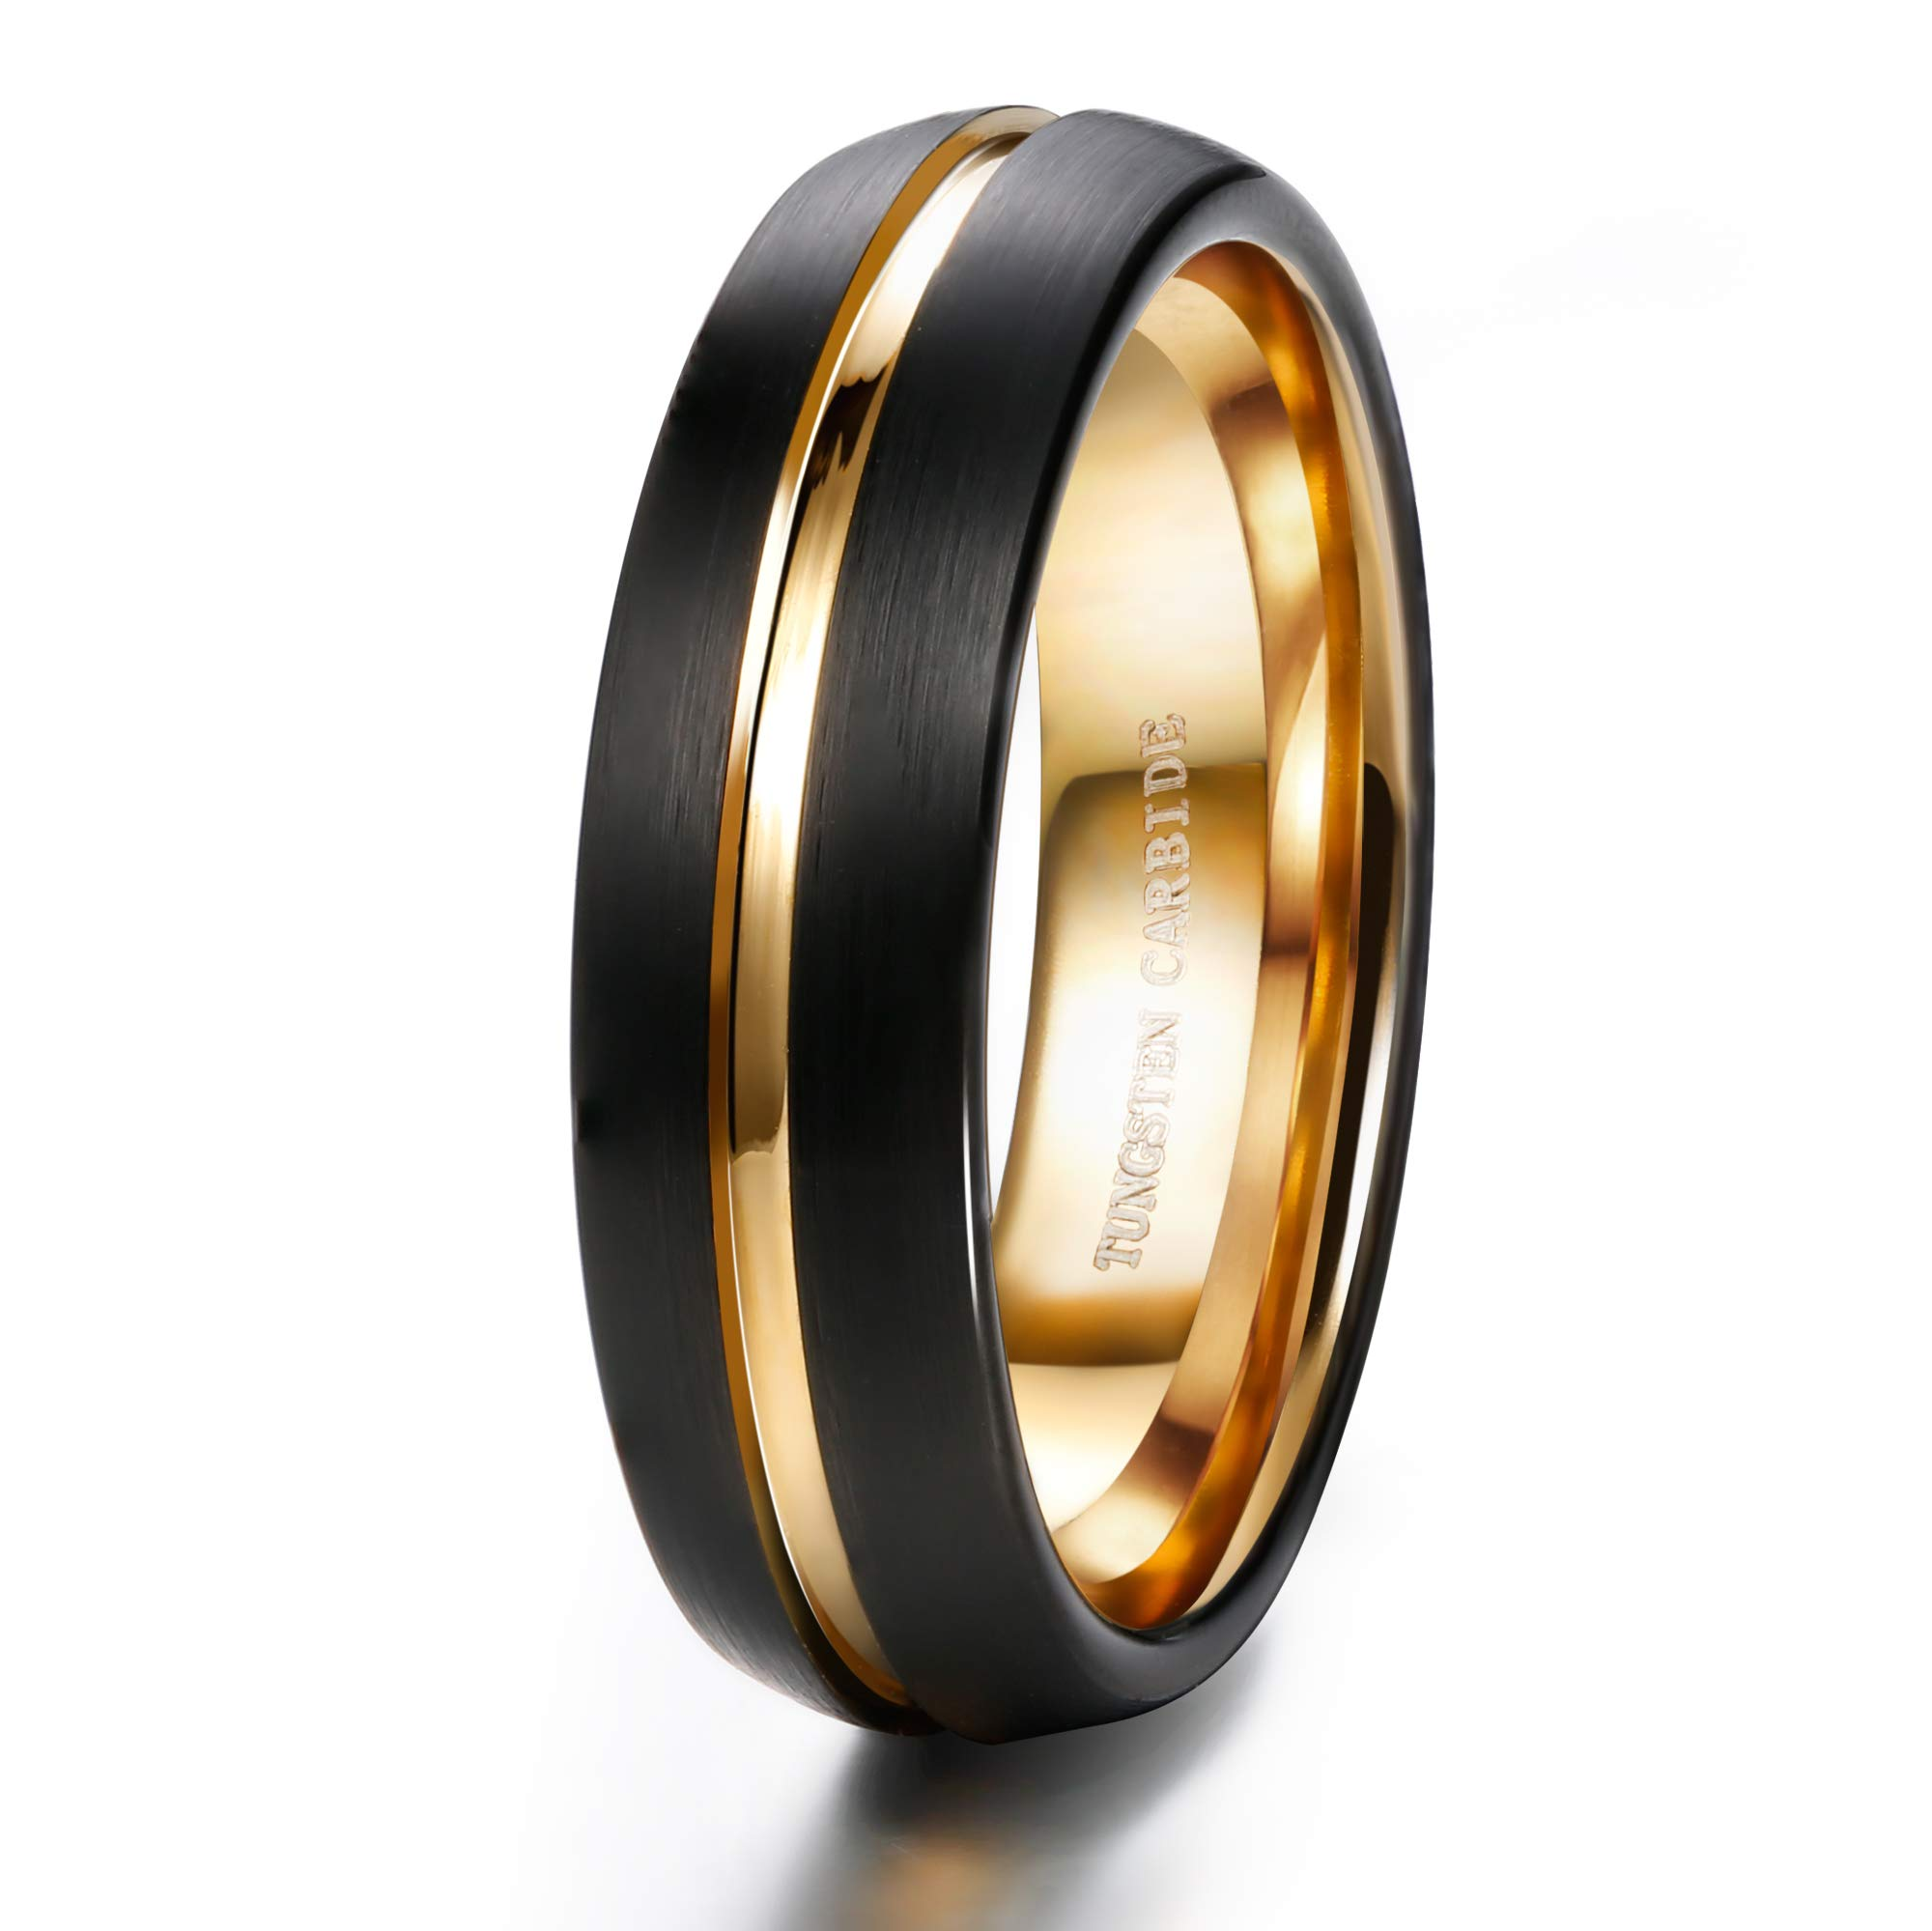 Tungary 6mm Mens Tungsten Carbide Wedding Band Ring Black Brushed Gold Inside Grooved Promise Band Size 10.5